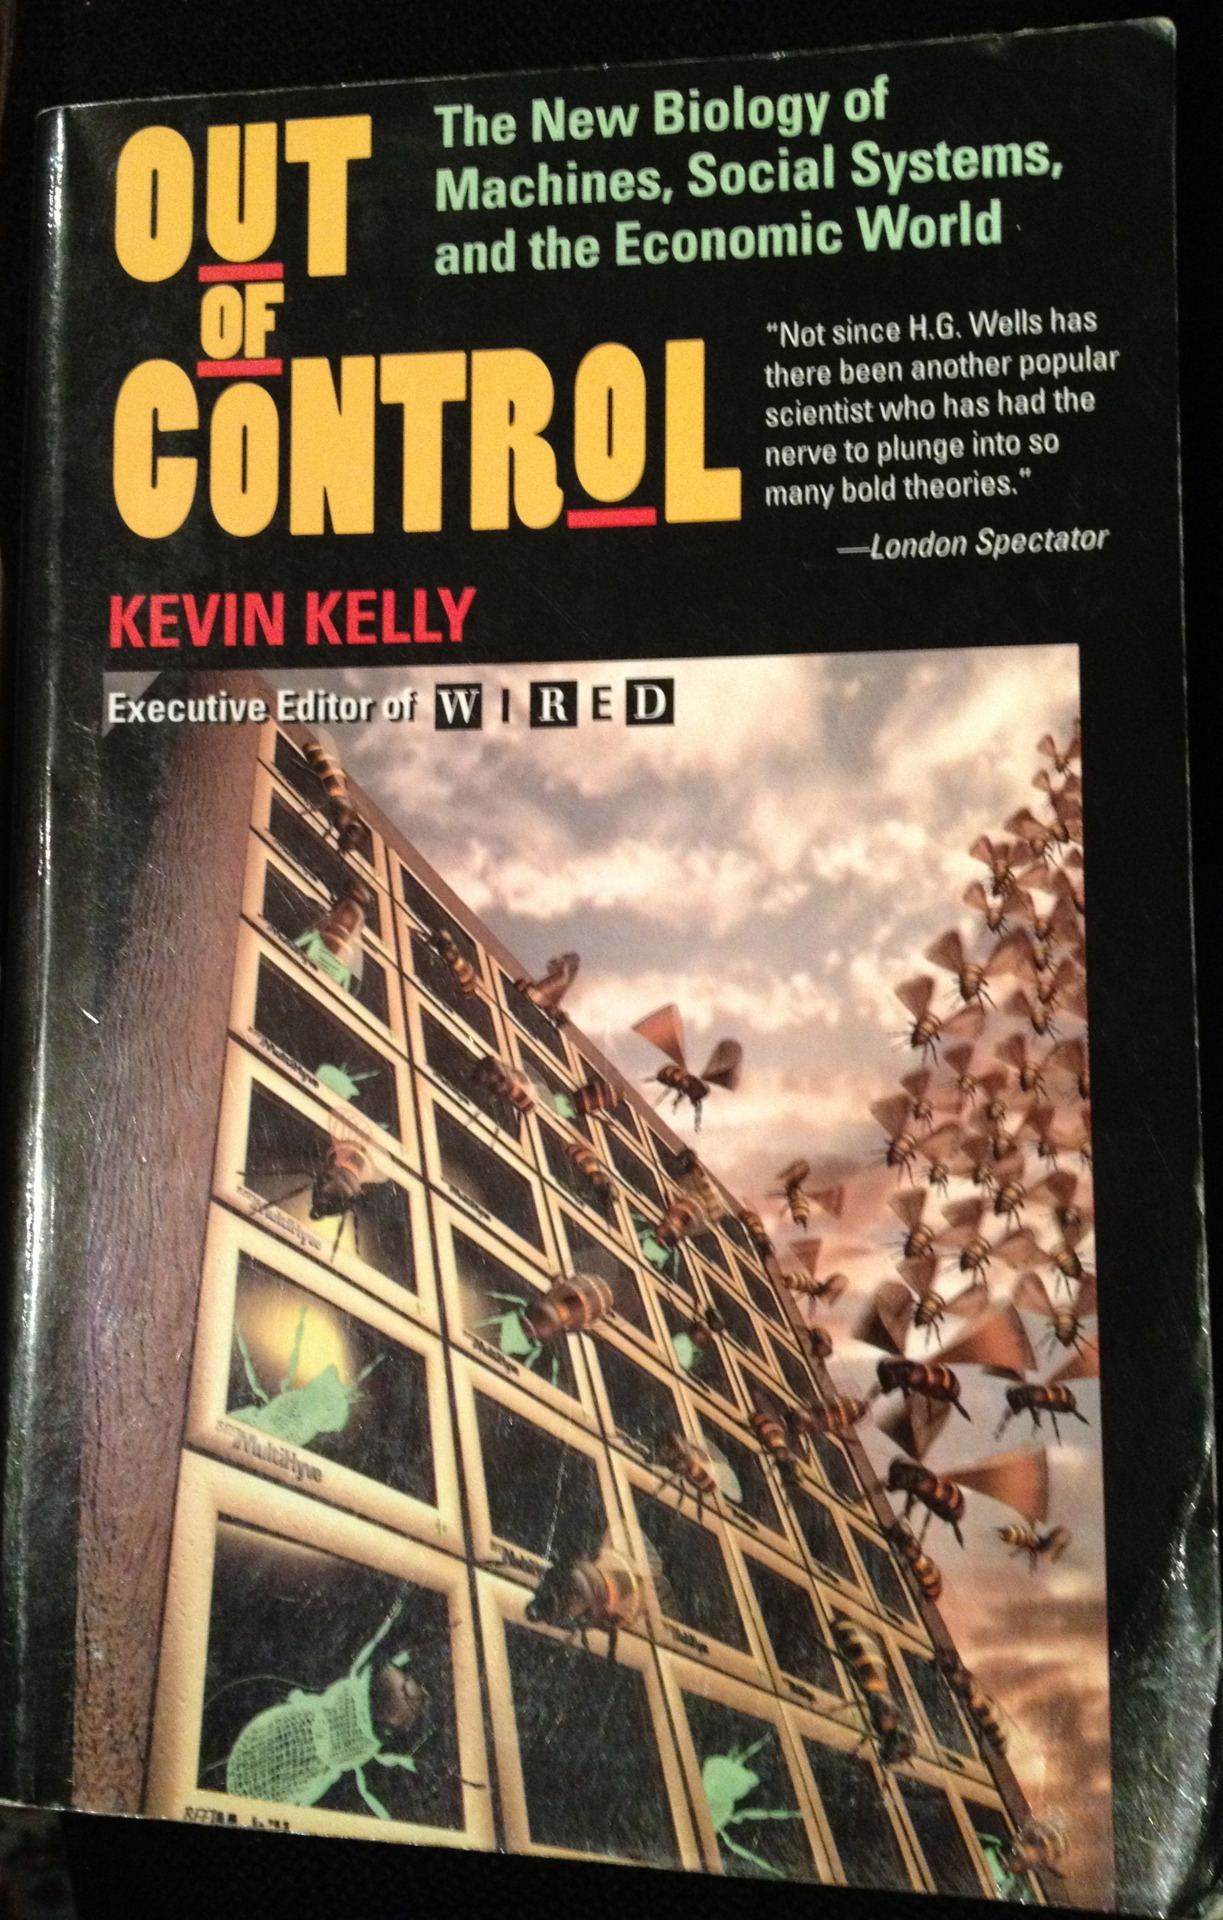 "This prescient book, published in 1994 on the eve of the Web age, shaped a lot of my early thinking about technology and media (as did Stewart Brand's book about the M.I.T. Media Lab). Kevin Kelly was the editor of Wired and previously the Whole Earth Review. The book touched on topics that were strange then, but now more familiar: the wisdom of crowds, the hive mind, gamification, distributed computing and what Kelly called ""the marriage of the born and the made.""  For the world of our own making has become so complicated that we must turn to the world of the born to understand how to manage it. That is, the more mechanical we make our fabricated environment, the more biological it will eventually have to be if it is to work at all. Our future is technological; but it will not be a world of gray steel. Rather our technological future is headed toward a neo-biological civilization.    [Originally posted on my discontinued This Old Book Tumblr.]"